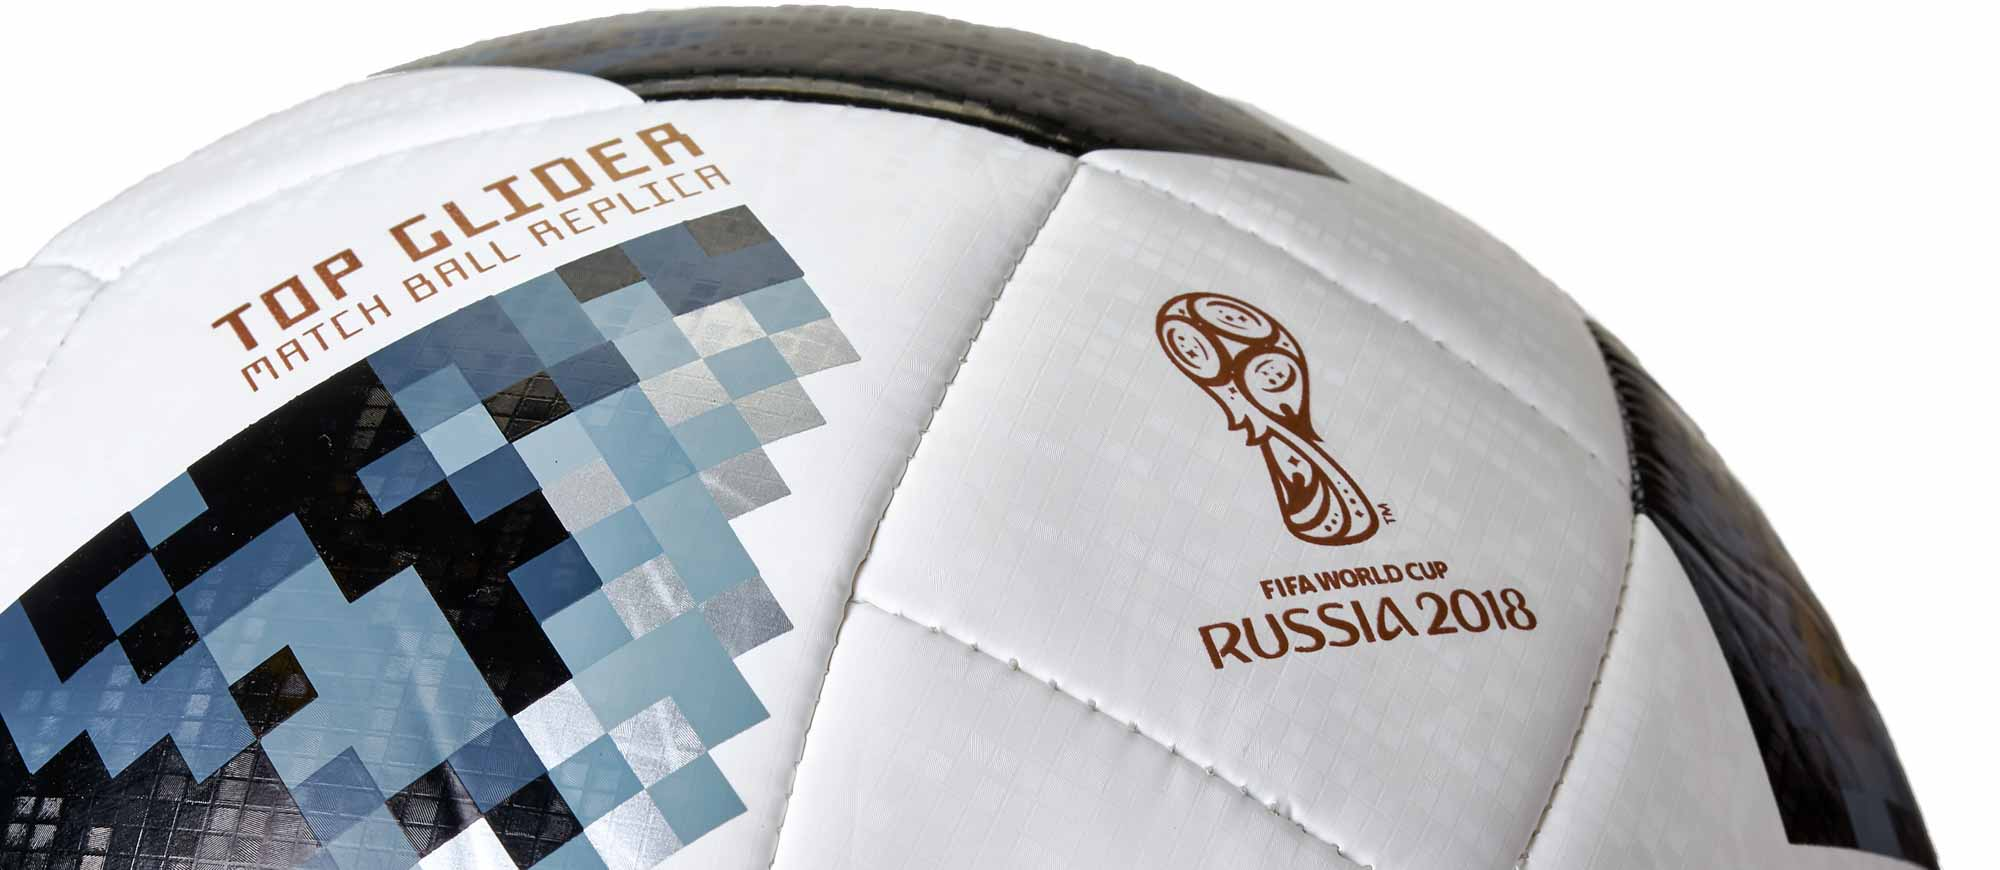 new product 53261 c3d51 adidas Telstar 18 World Cup Top Glider Soccer Ball – White Metallic Silver